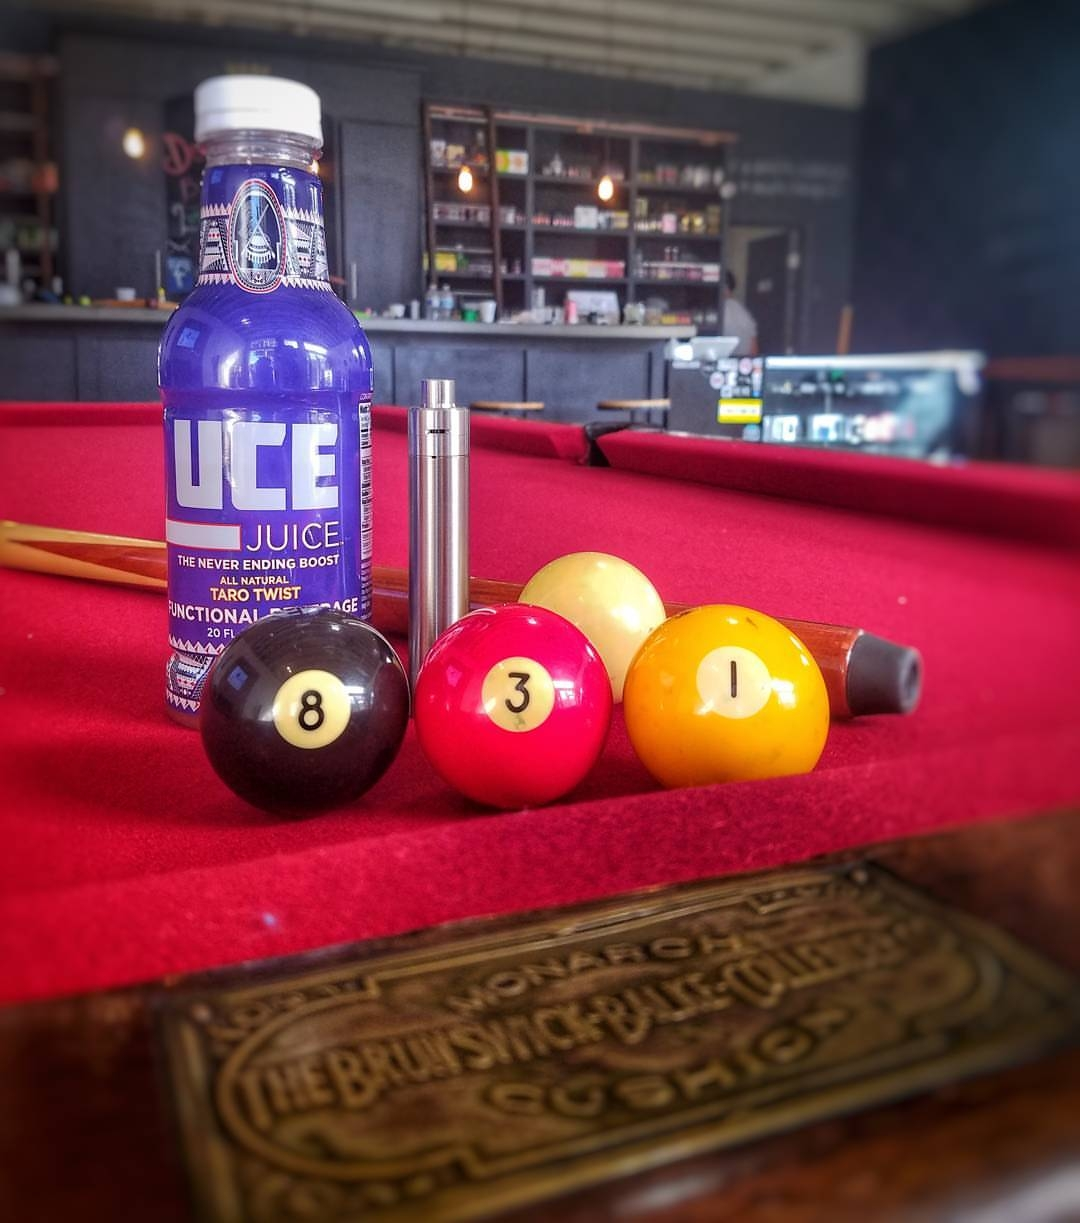 New Pool Table and UCE Juice at The Vape Club   Lighthouse